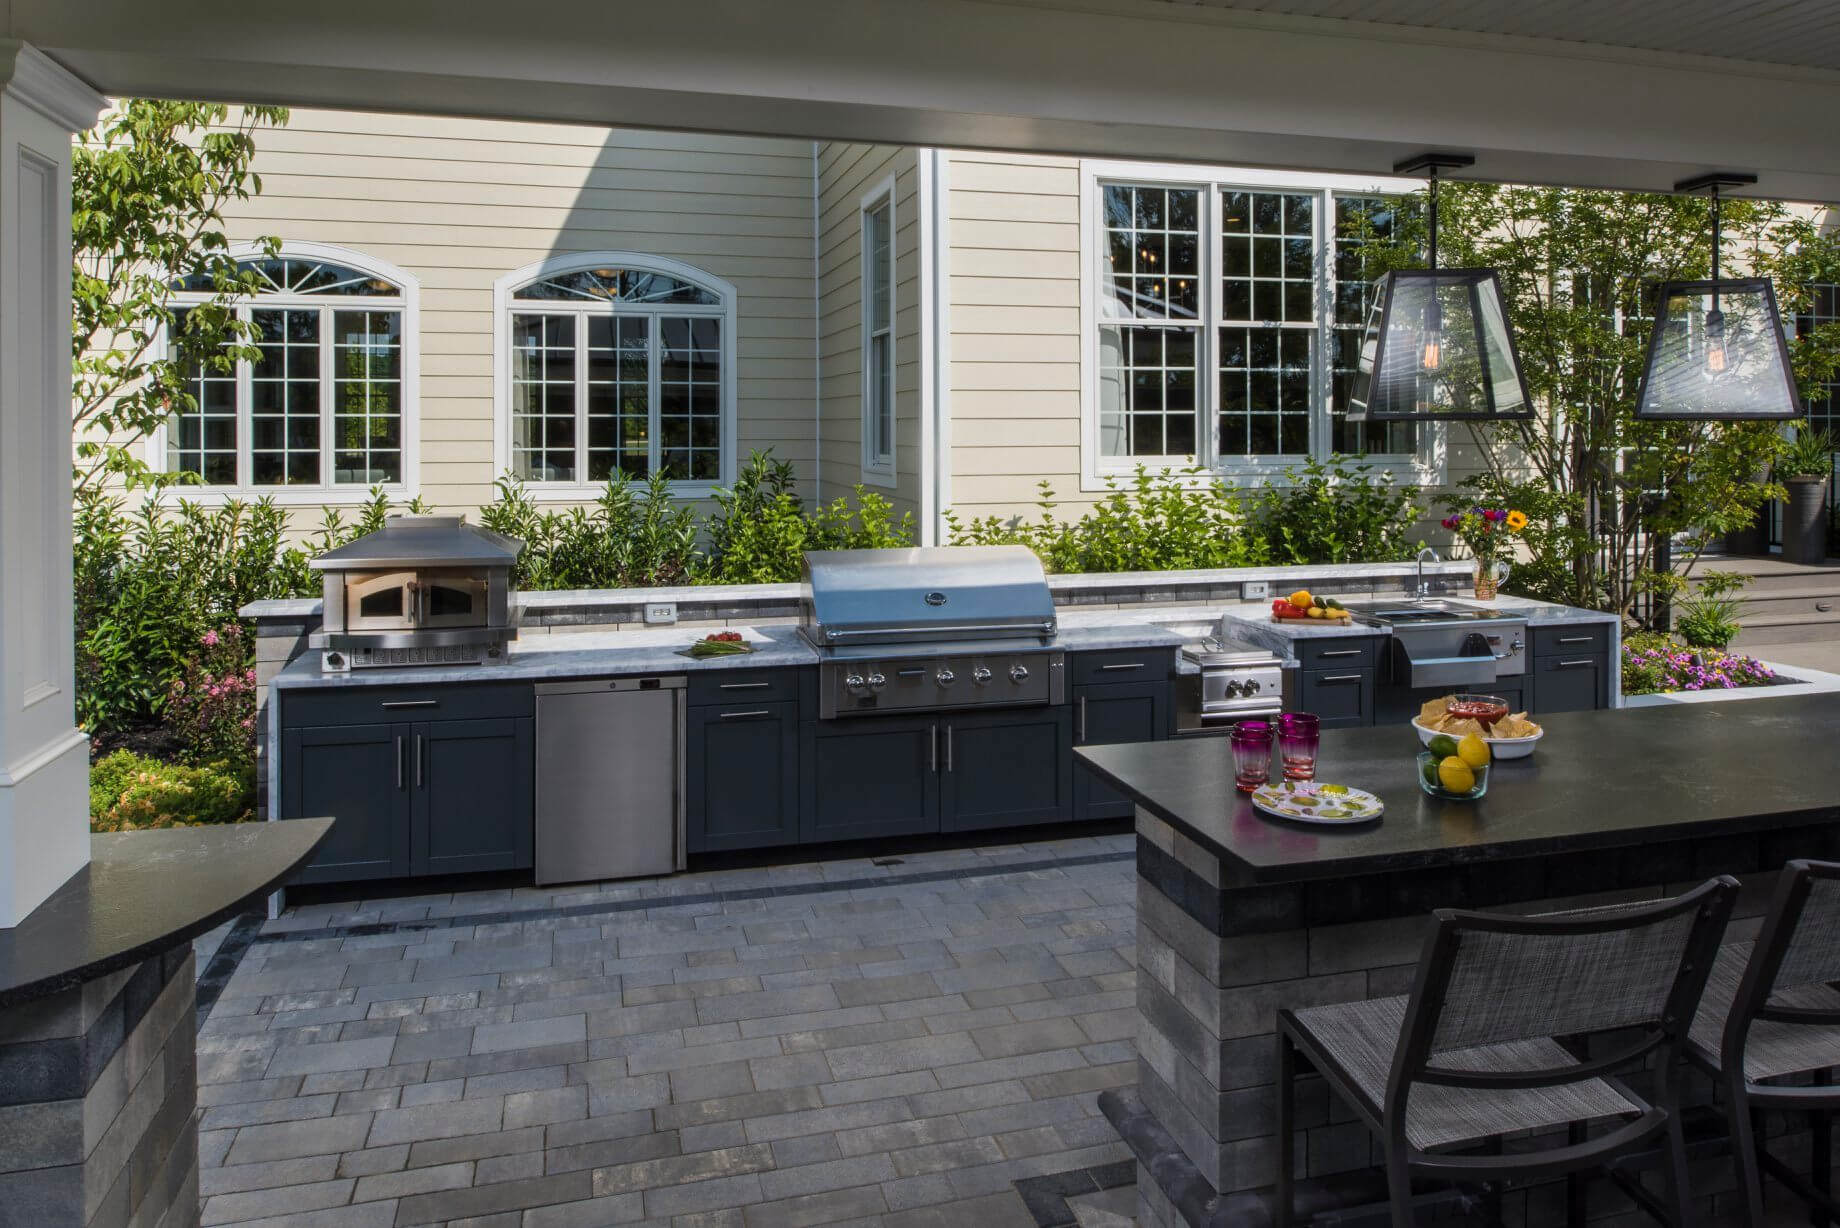 7 Tips For Planning Your Ultimate Outdoor Kitchen